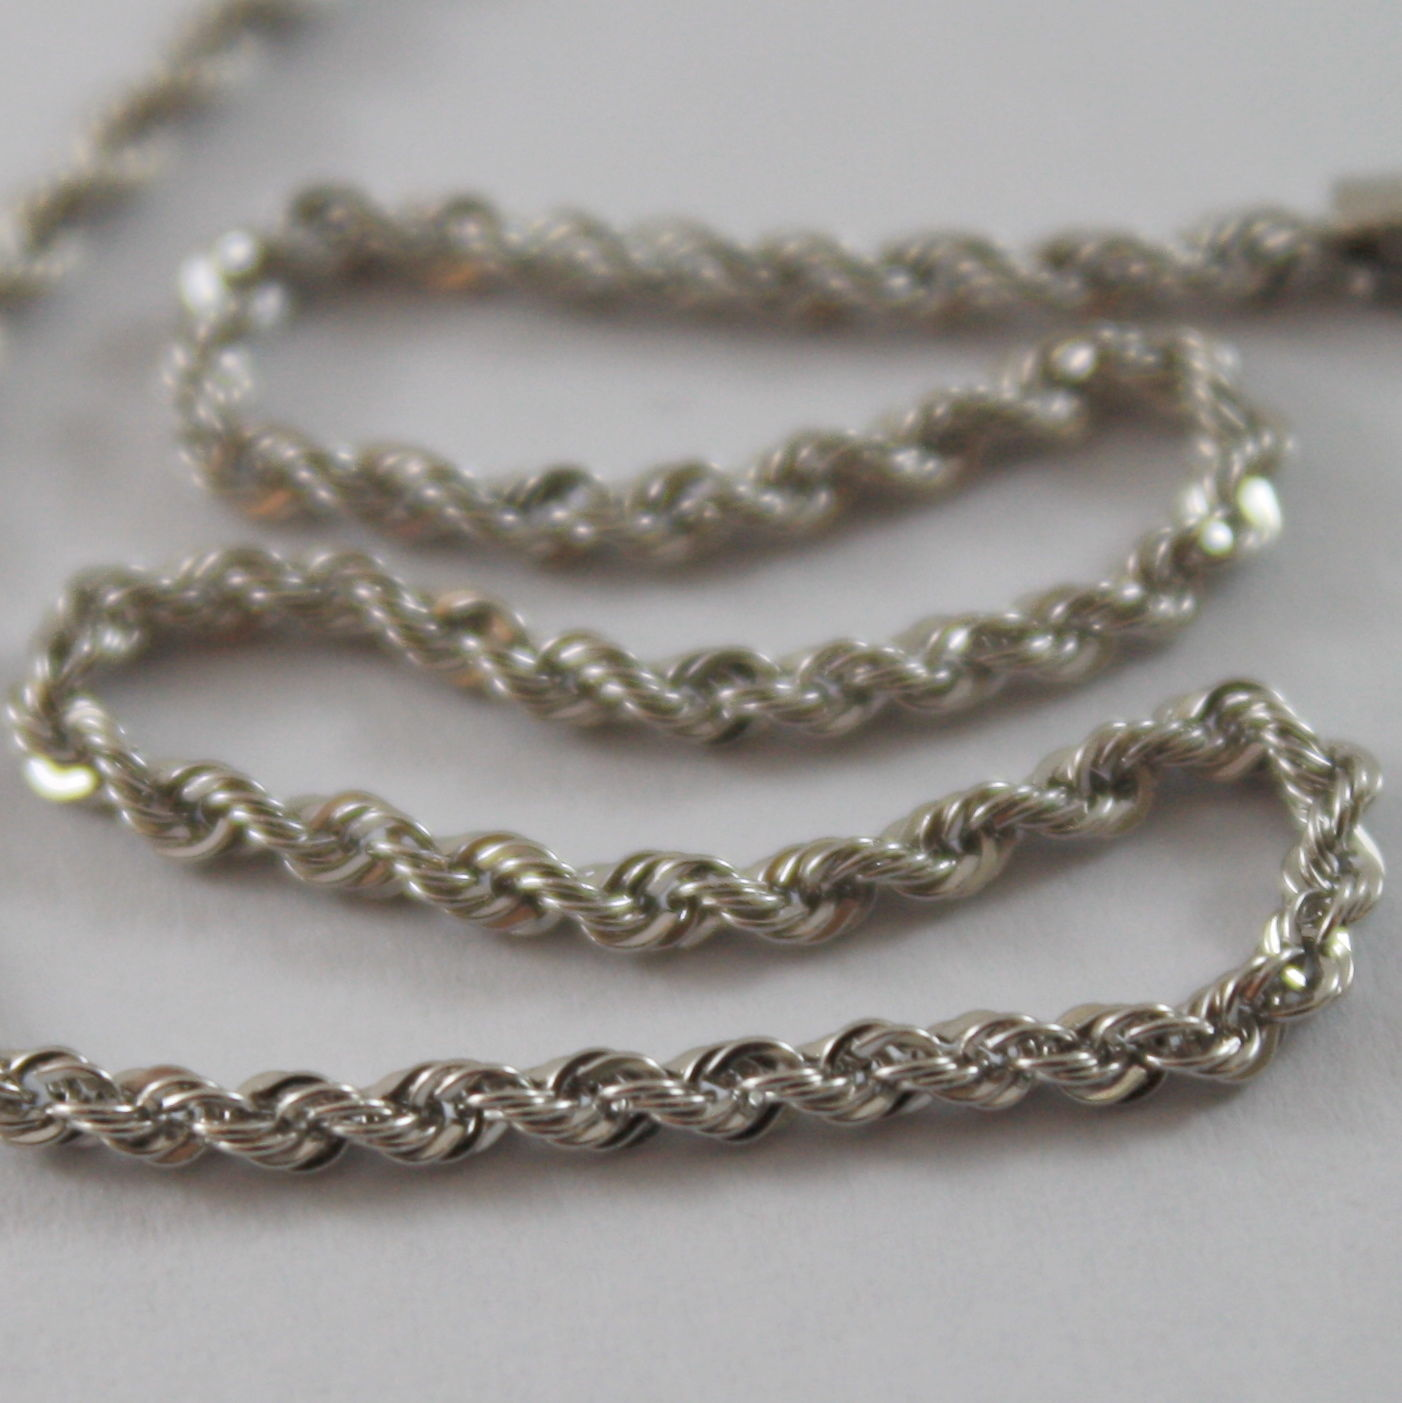 18K WHITE GOLD CHAIN NECKLACE, BRAID ROPE 19.68 INCH LONG, MADE IN ITALY